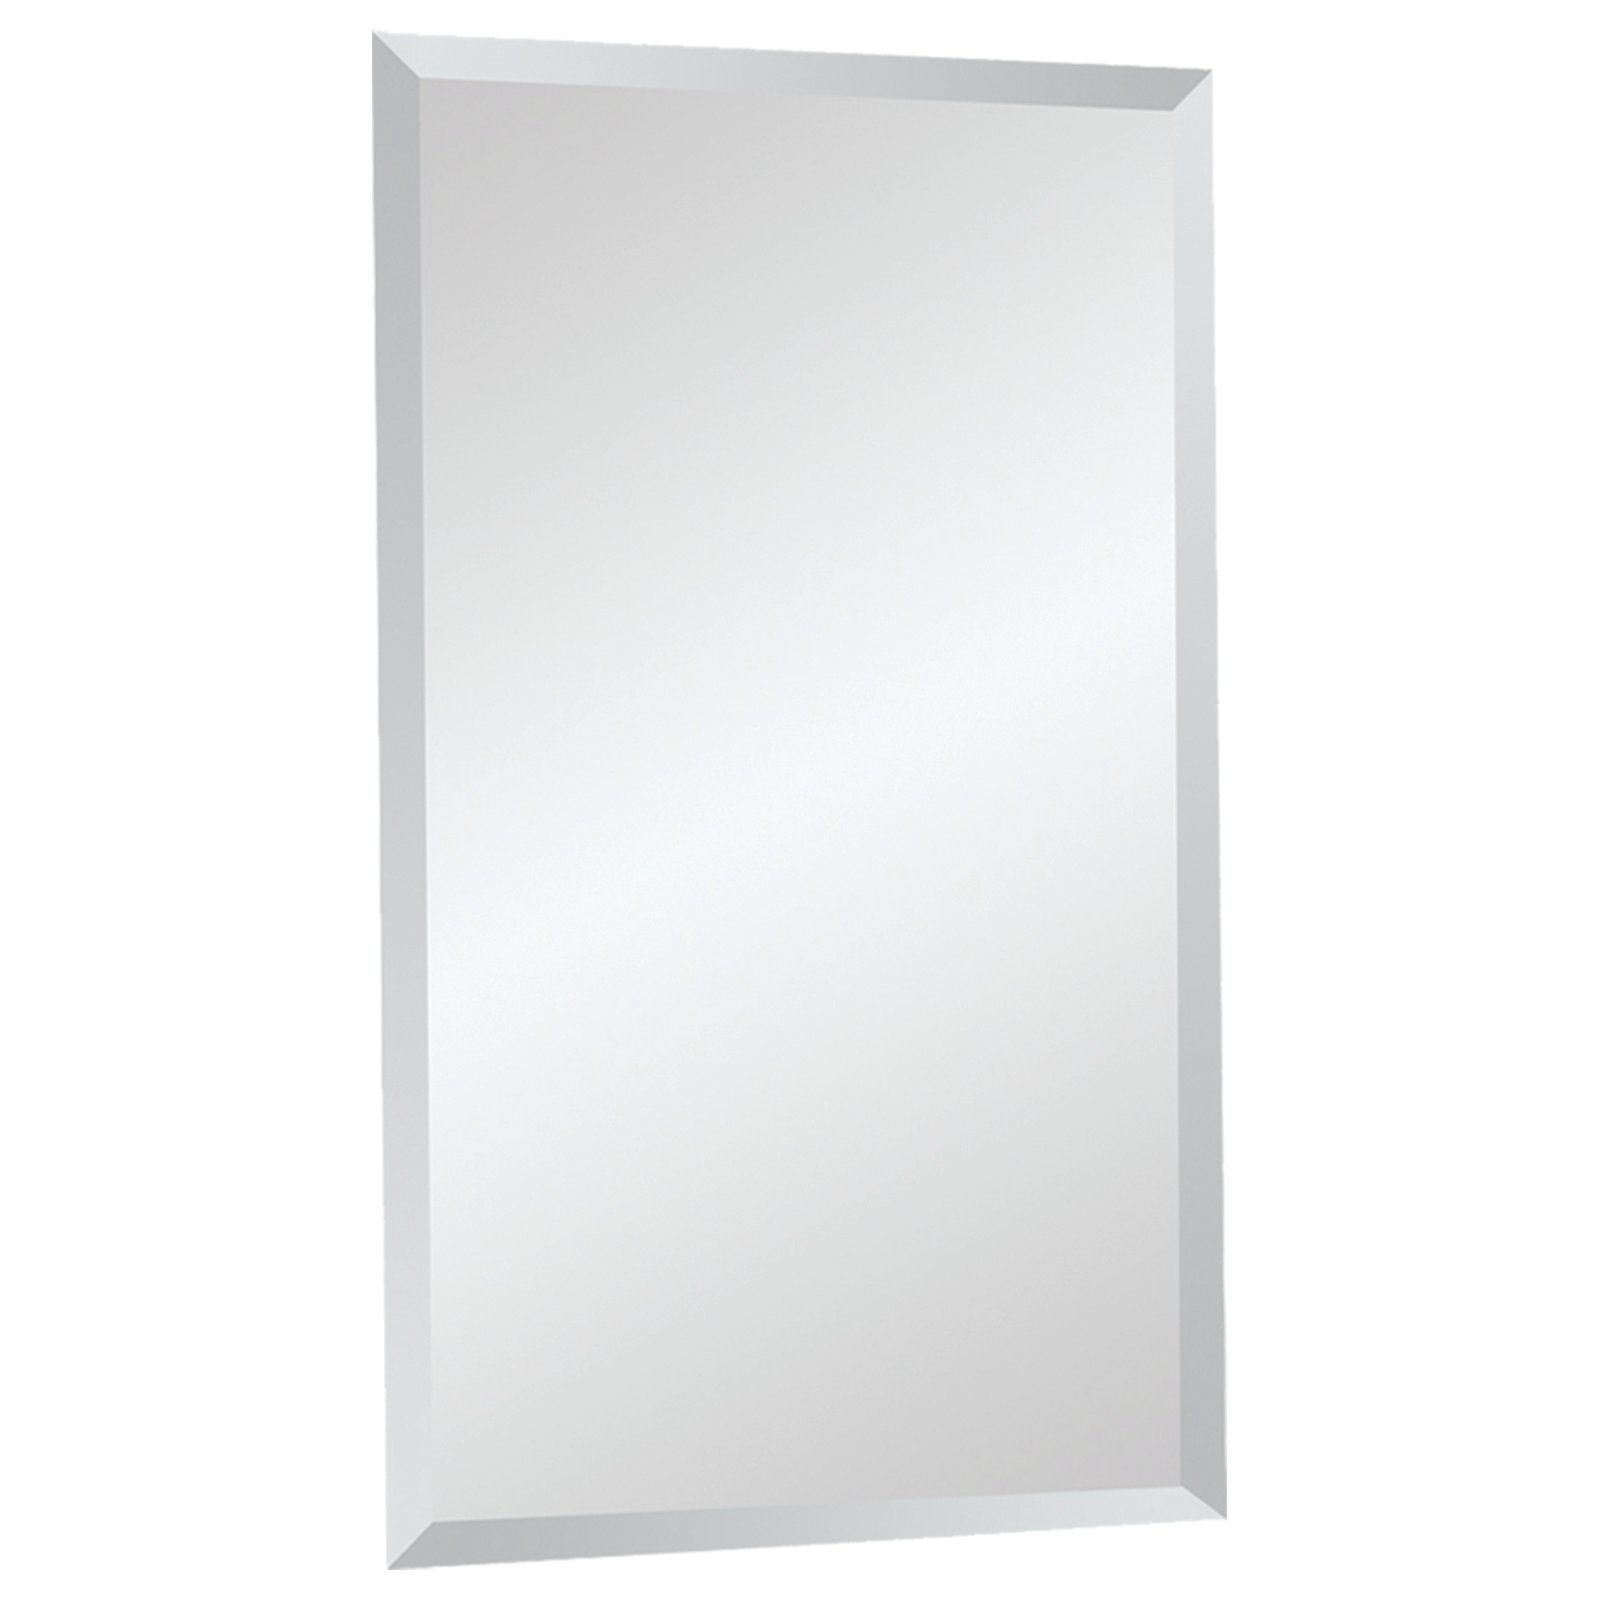 Frameless Mirrors Youll Love Wayfair Pertaining To Where To Buy Mirrors Without Frames (Image 5 of 15)